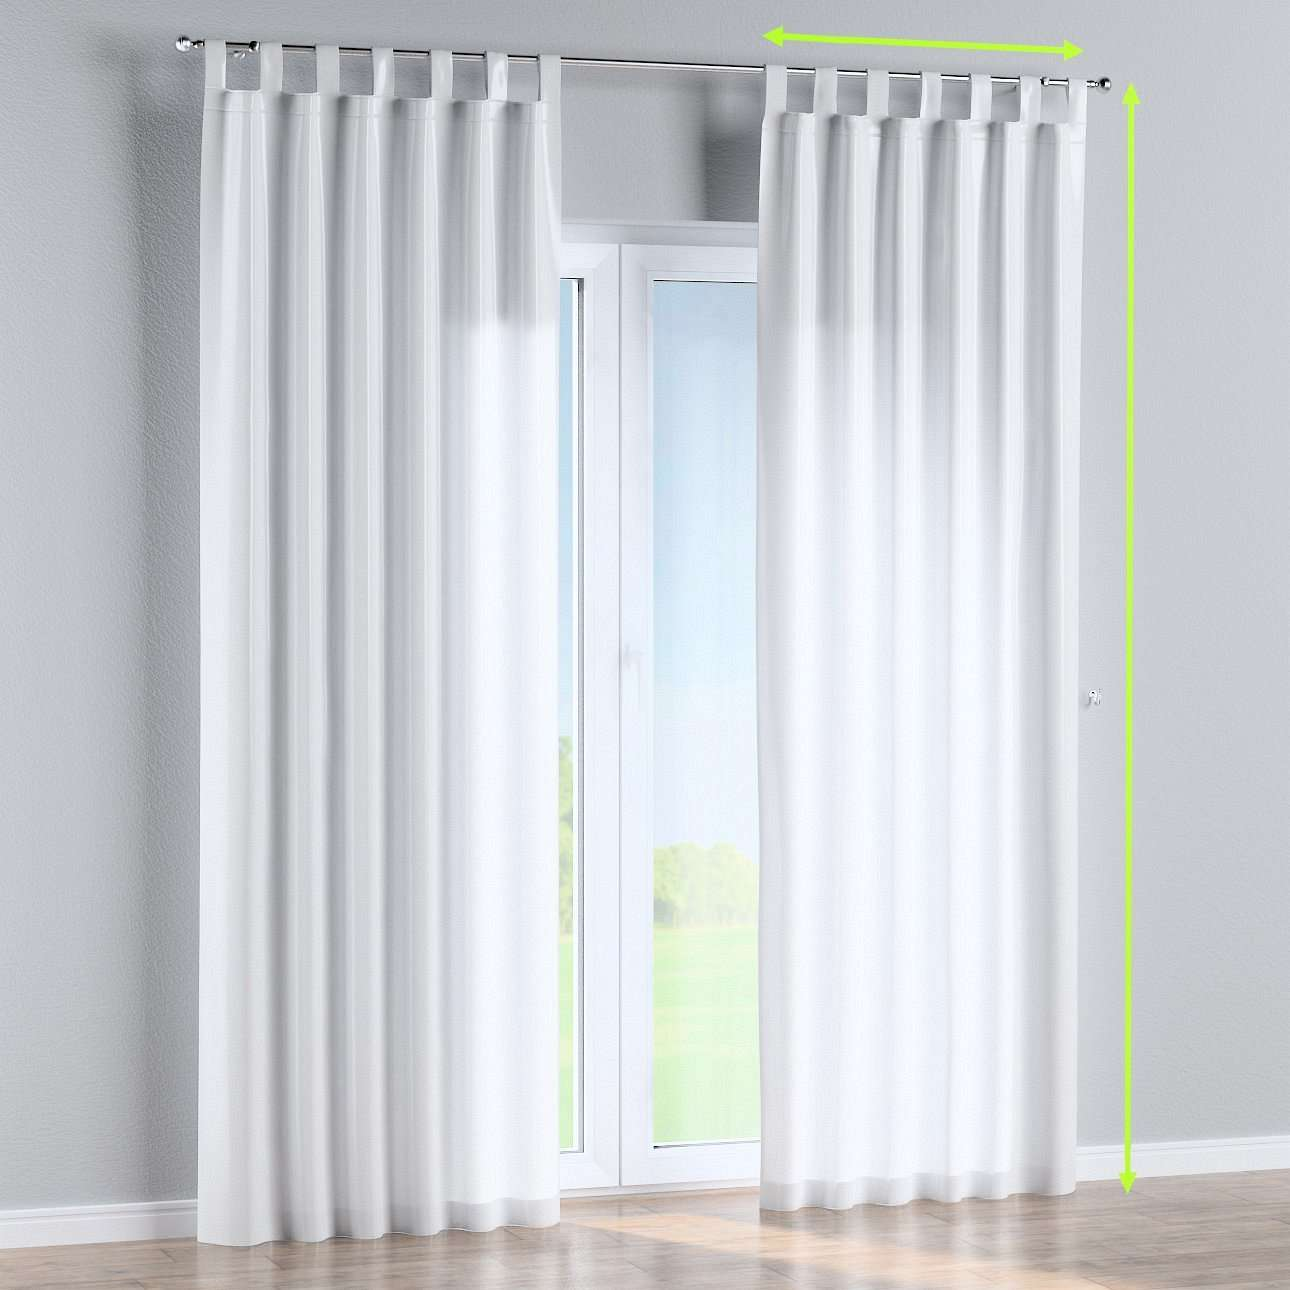 Tab top lined curtains in collection Damasco, fabric: 141-78